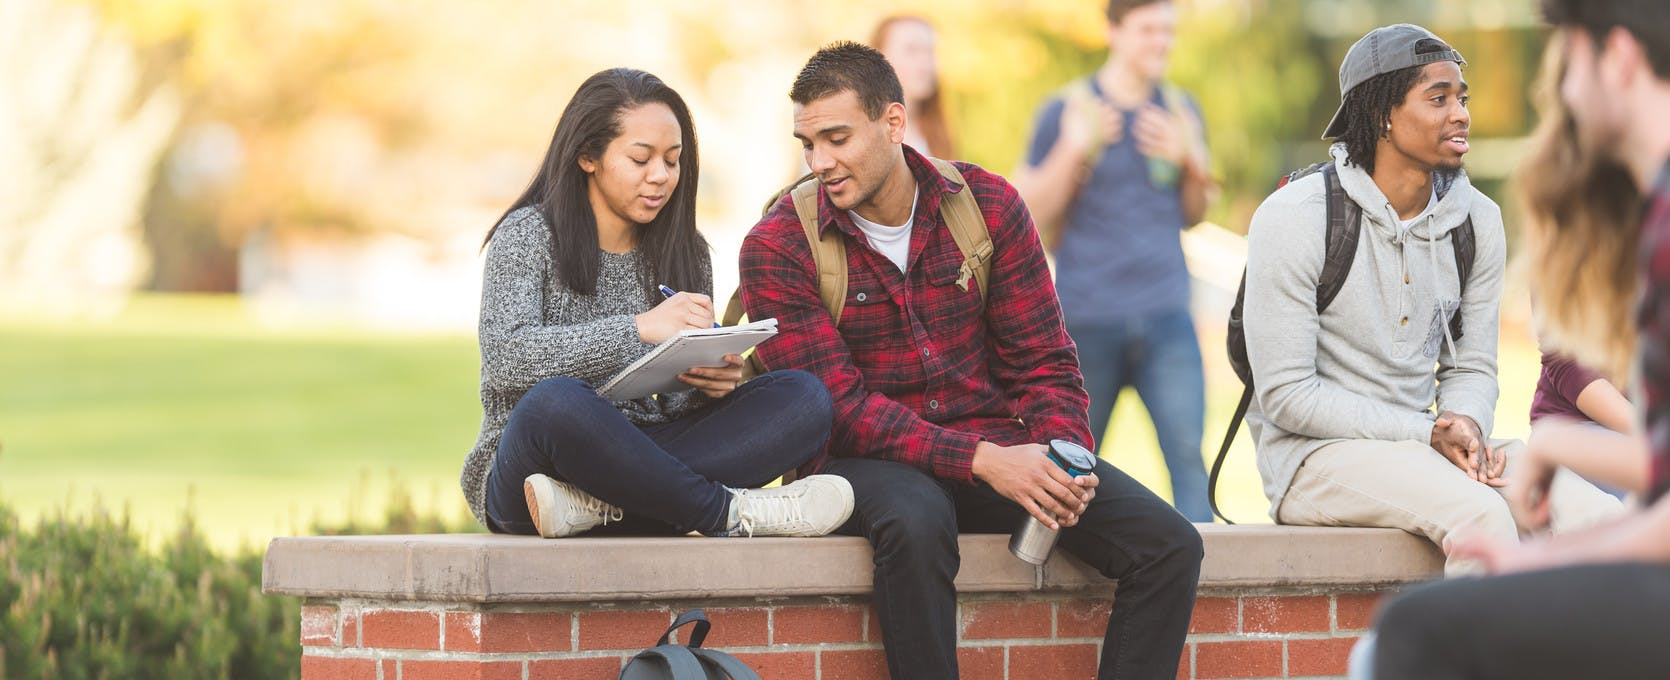 Students review schedules on campus